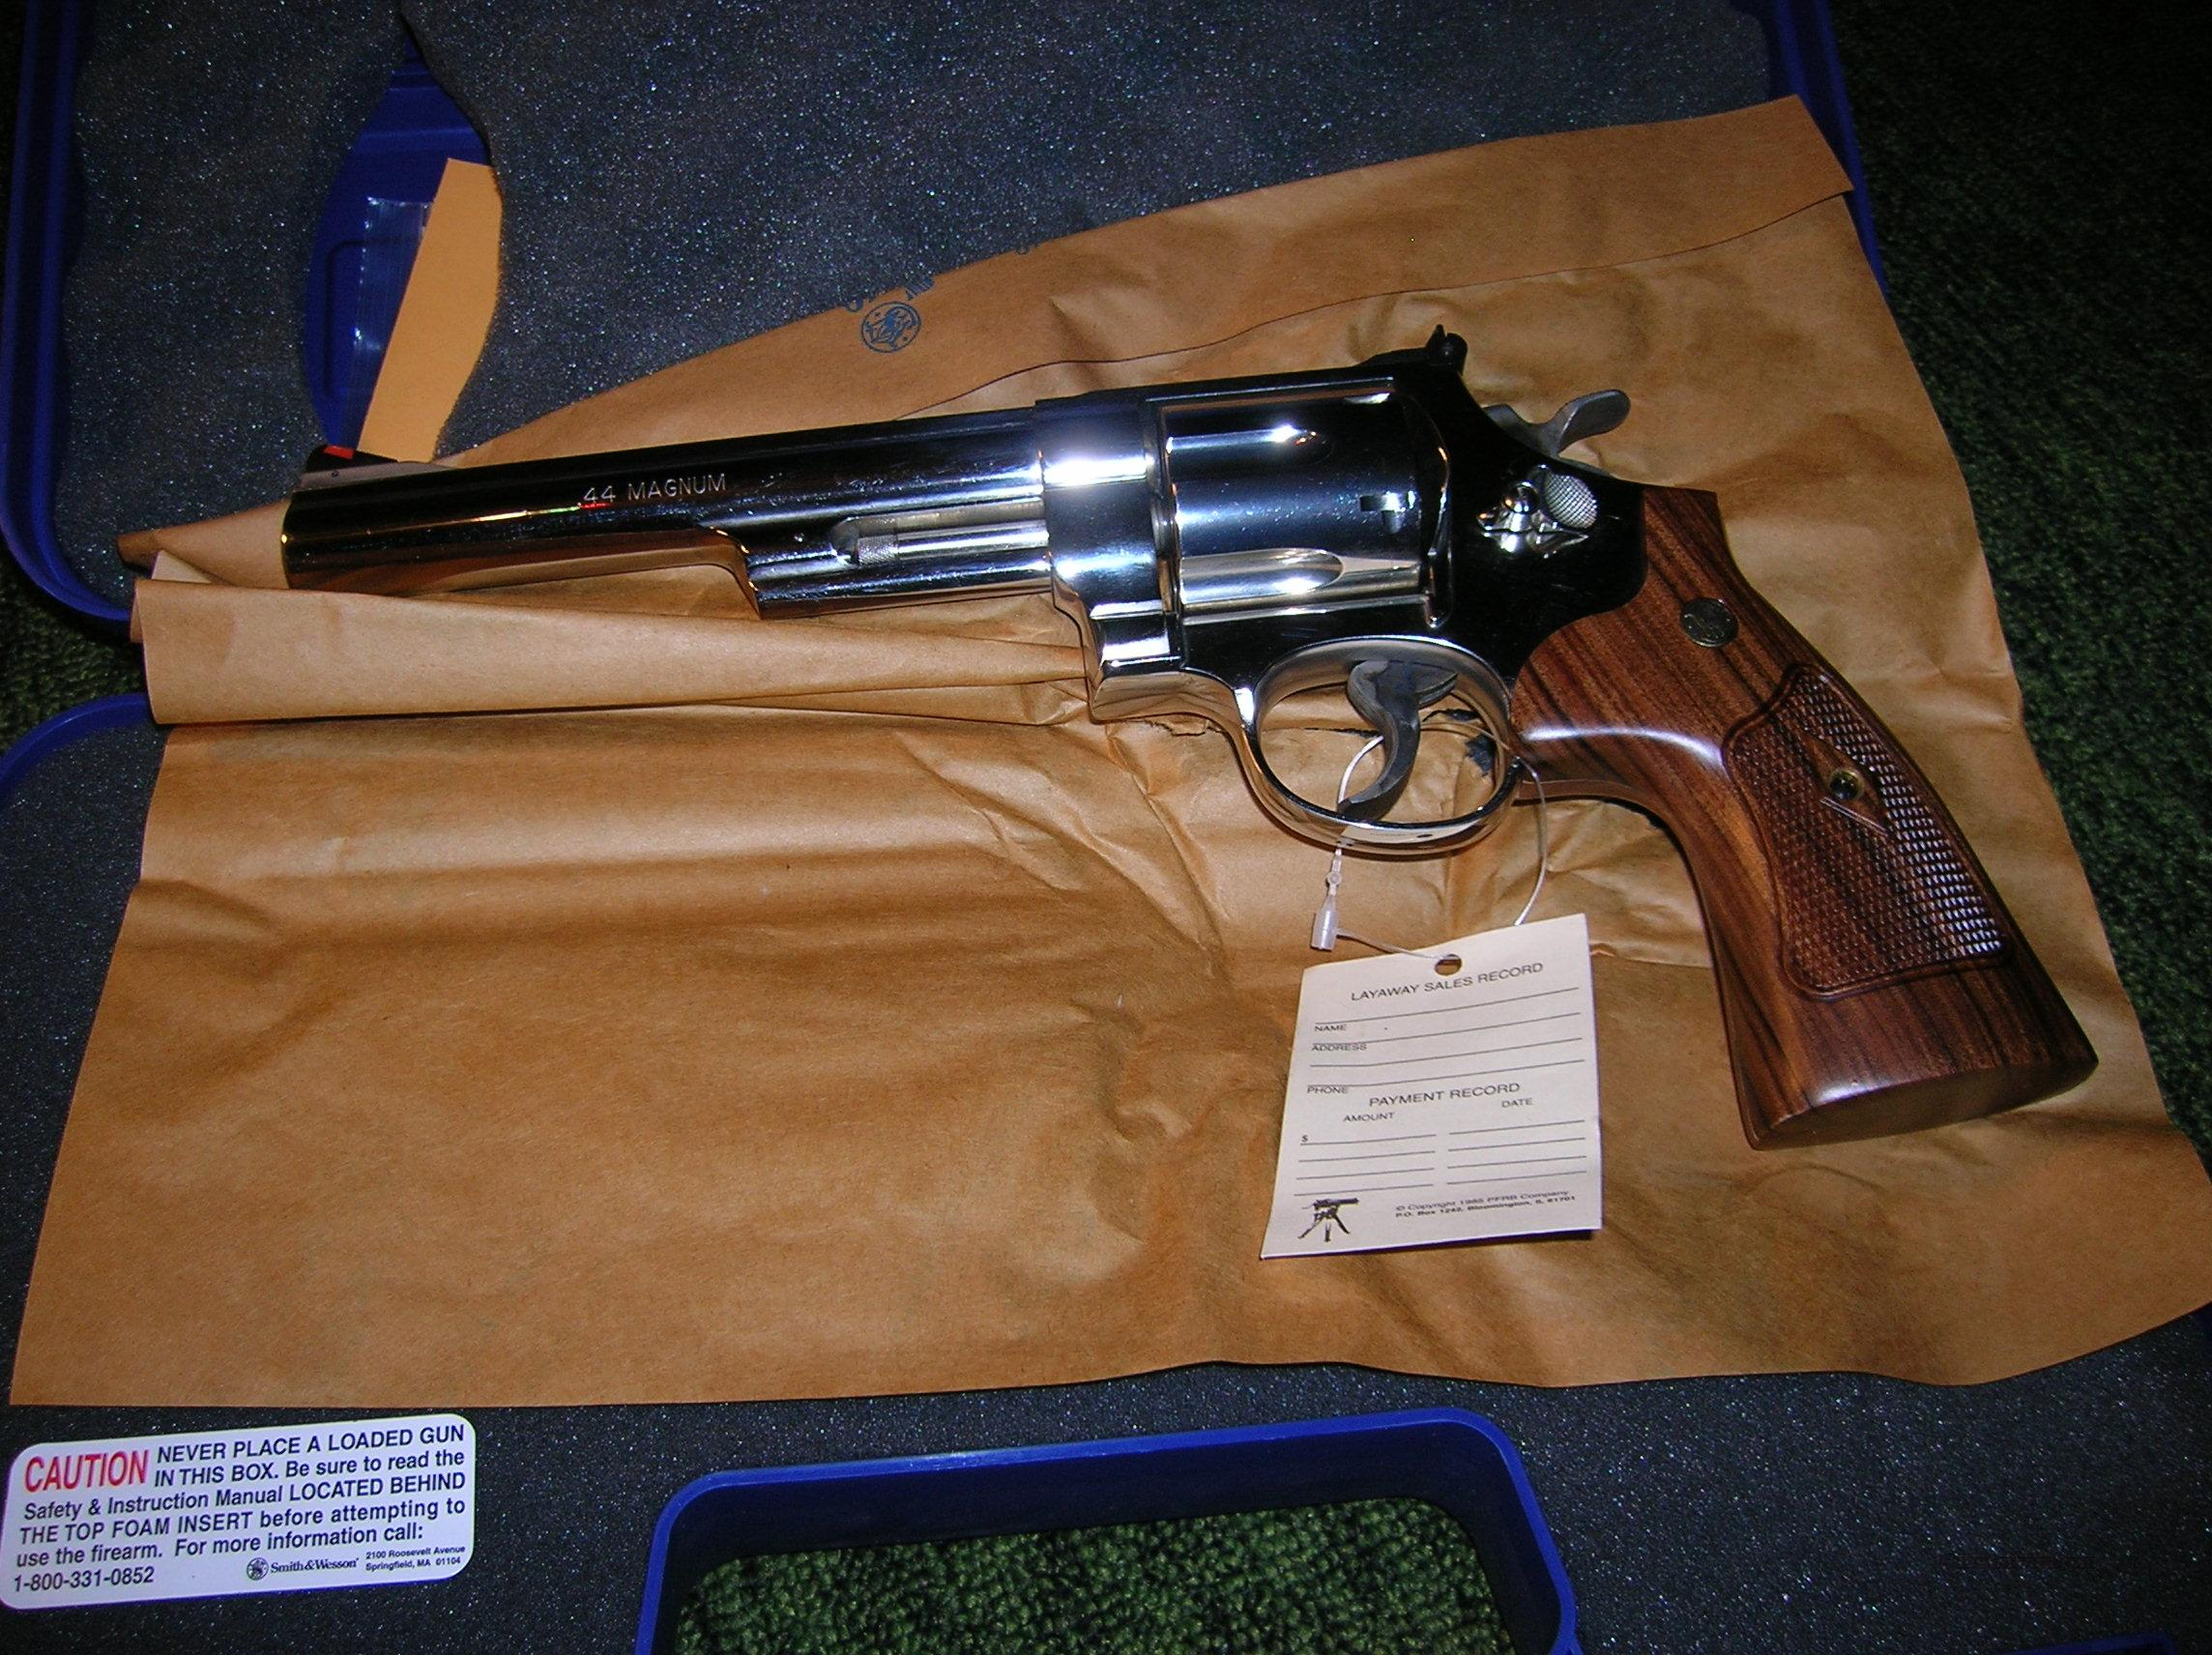 "SMITH AND WESSON 29 NICKEL 44 MANGNUM REVOLVER WITH 6-1/2"" BARREL  Guns > Pistols > Smith & Wesson Revolvers > Full Frame Revolver"